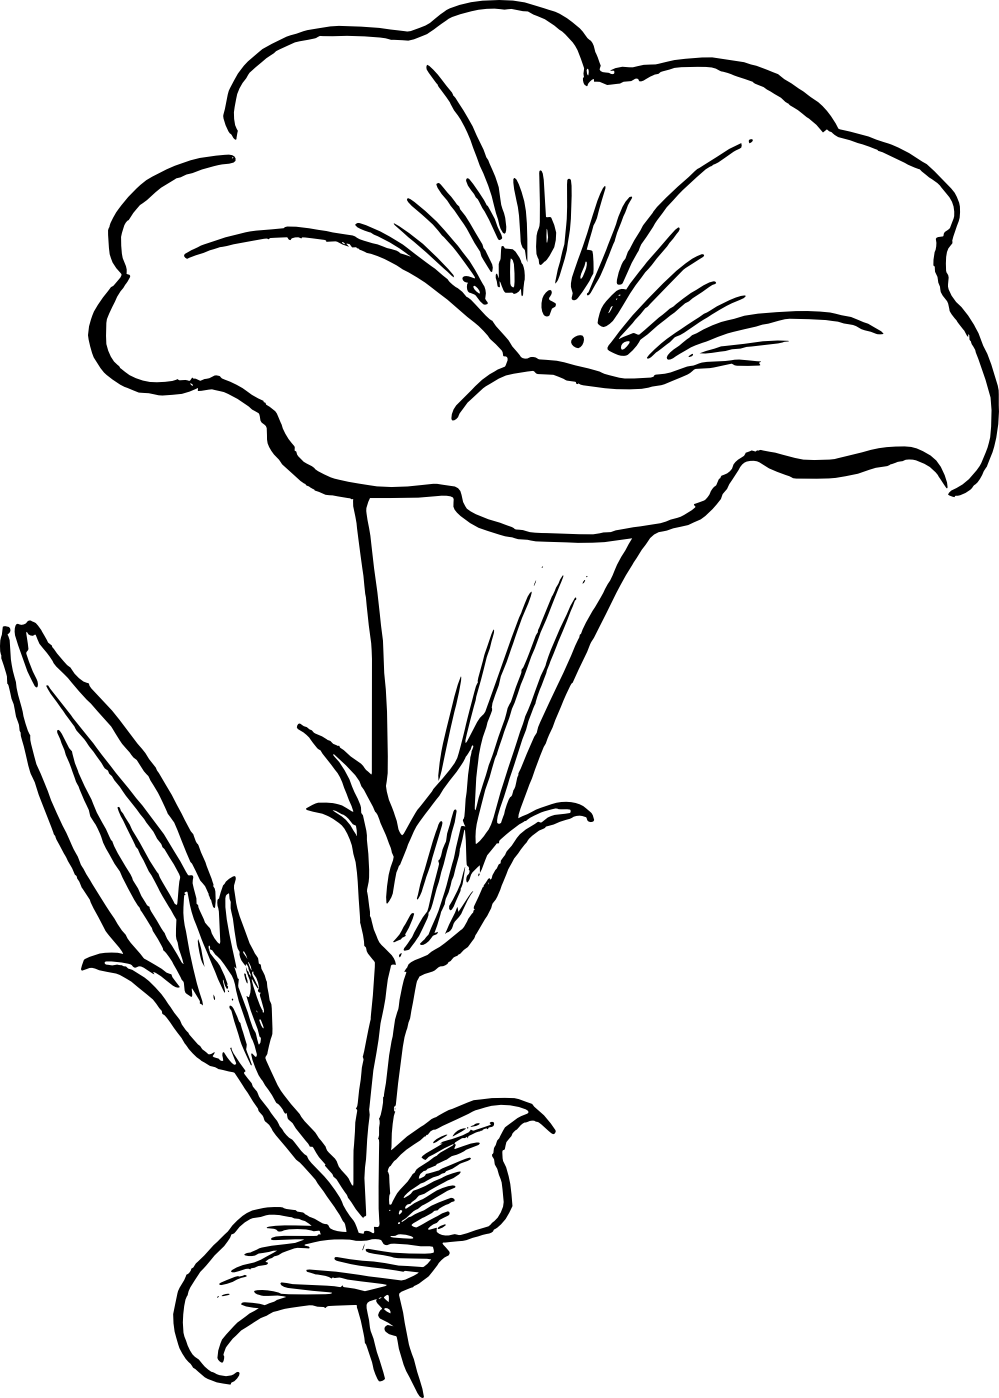 Line Drawing Jasmine Flower : Dragonfly clipart black and white panda free